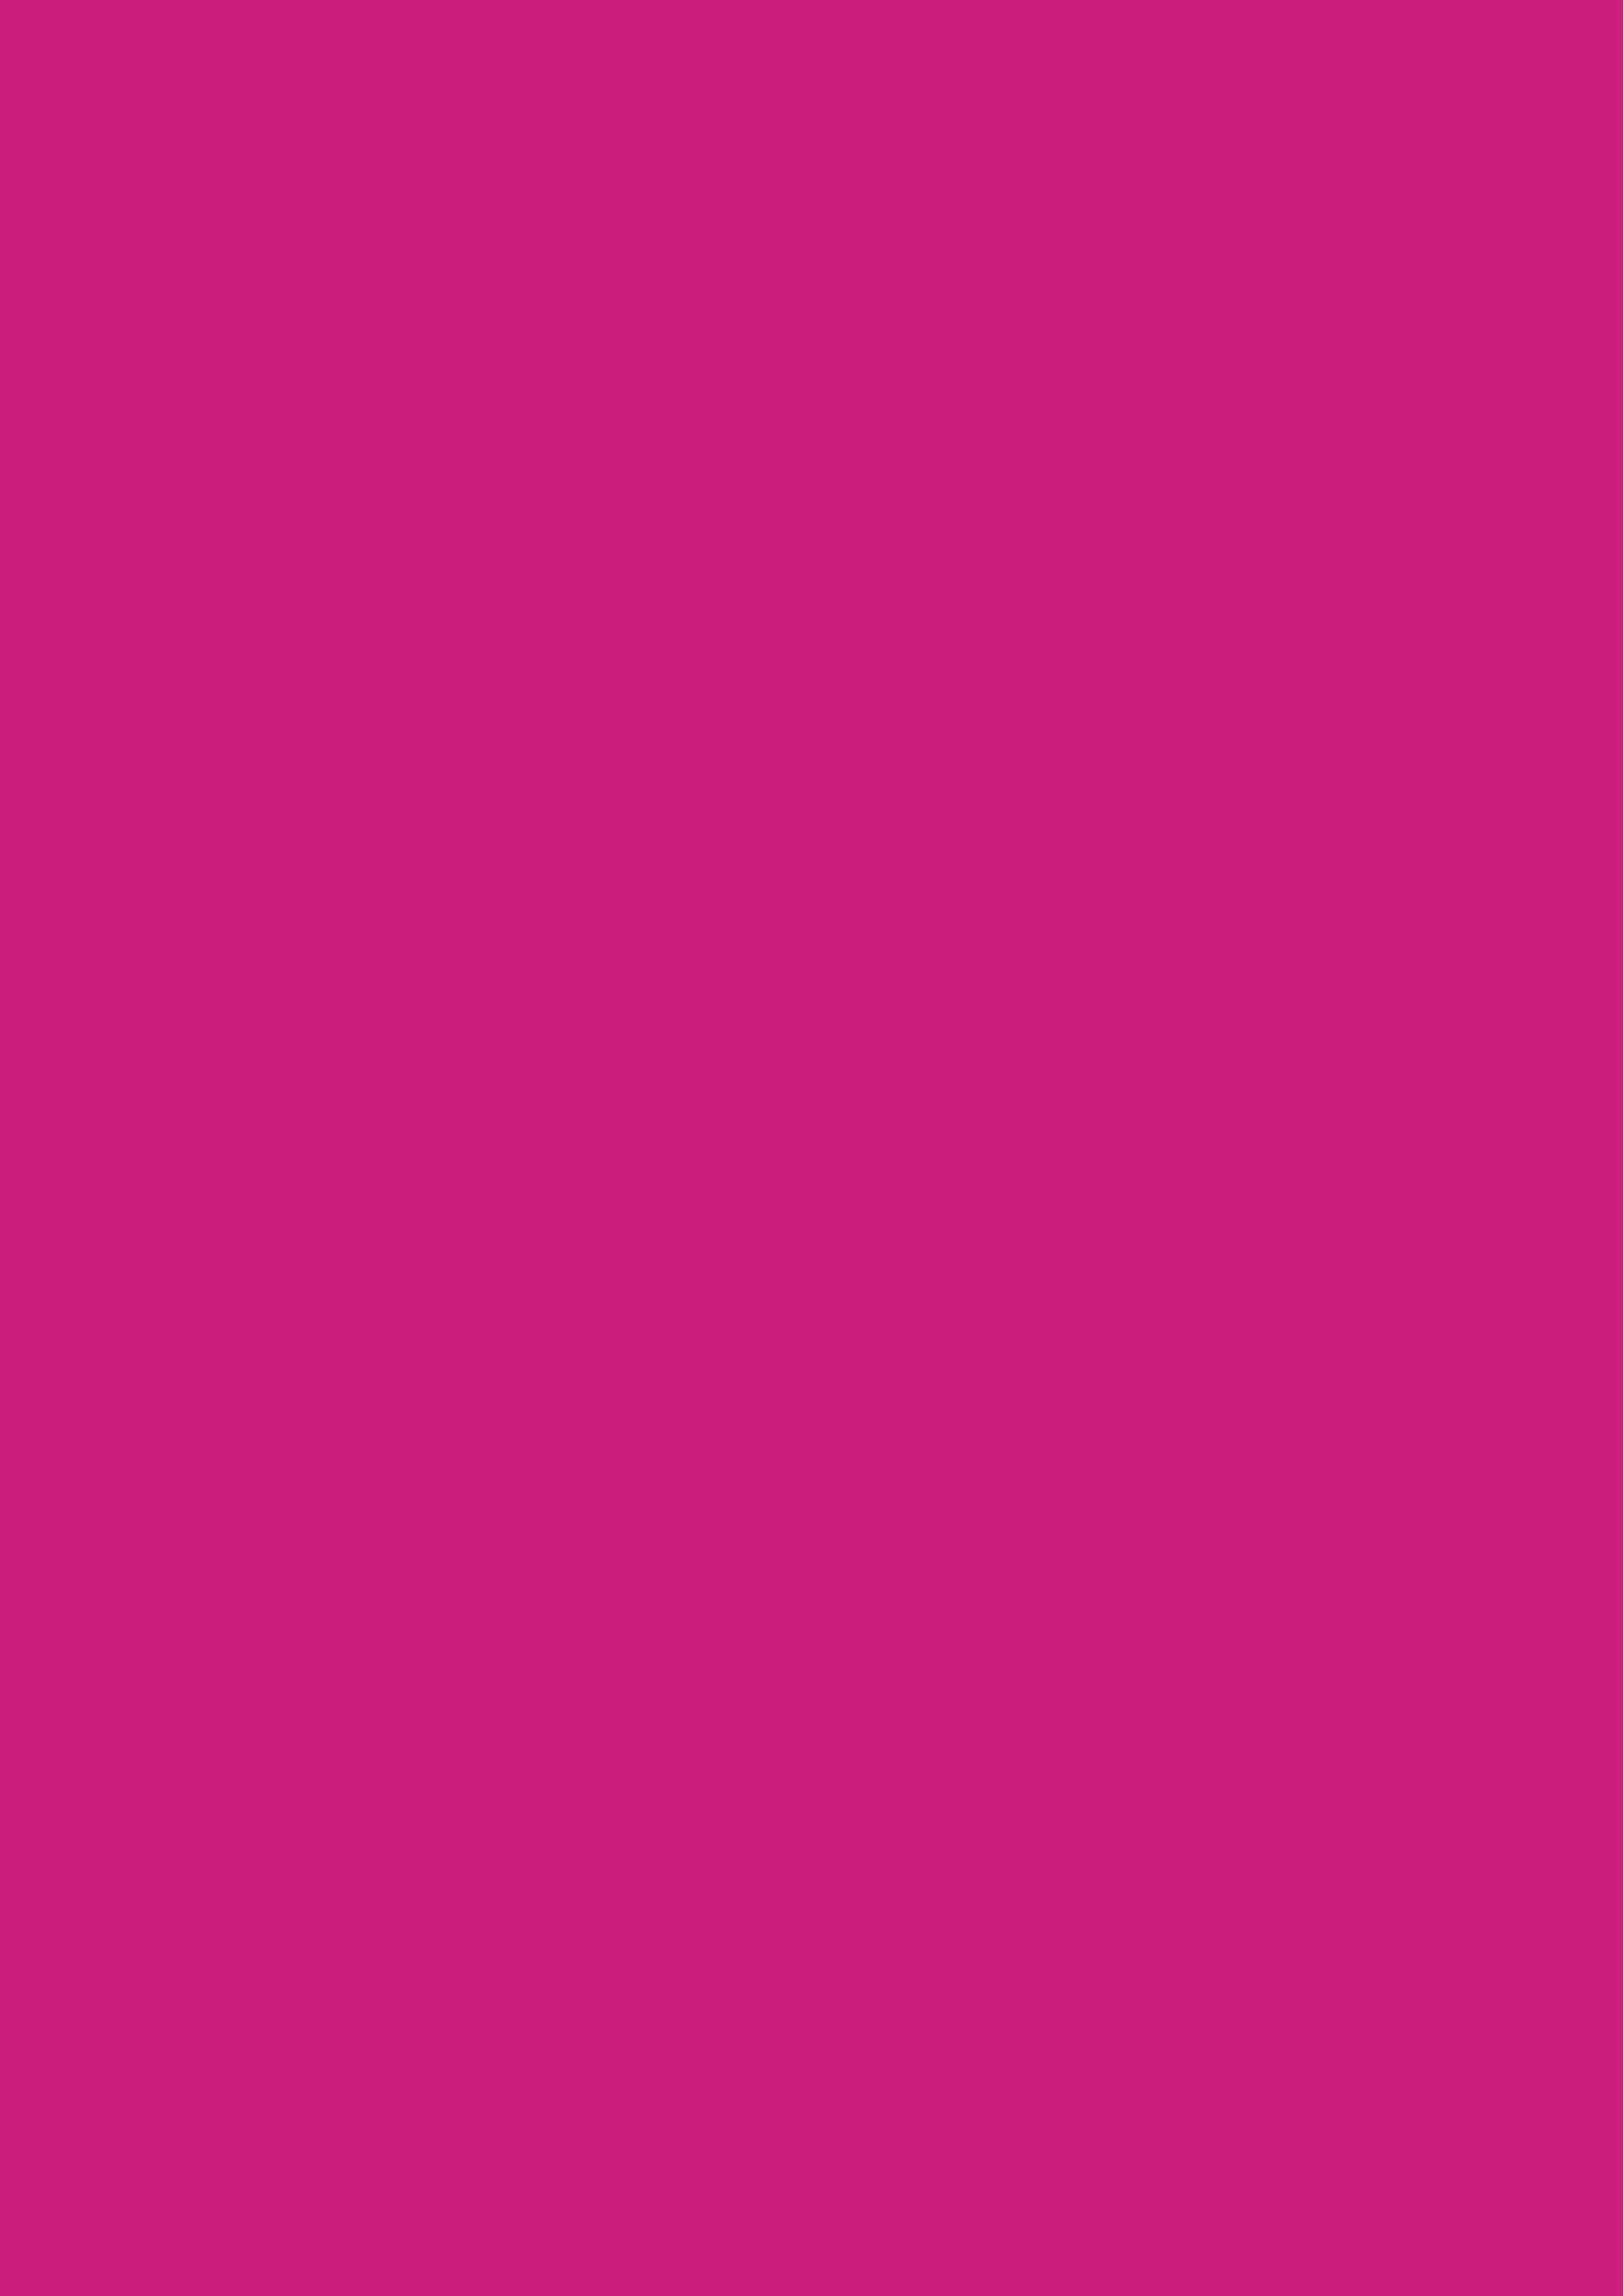 2480x3508 Magenta Dye Solid Color Background